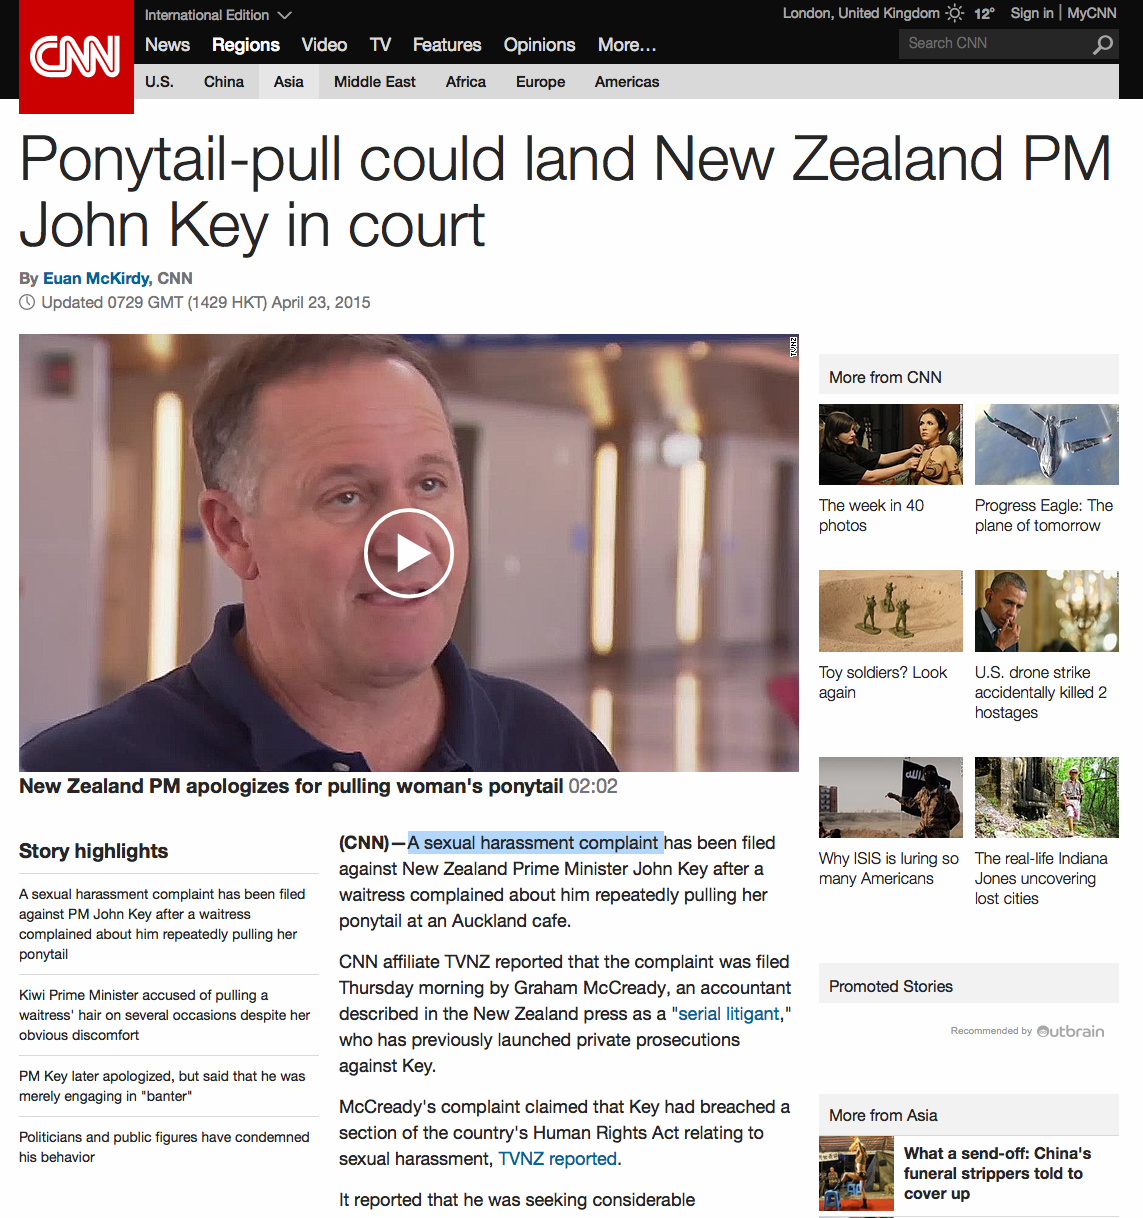 Source: http://edition.cnn.com/2015/04/22/asia/john-key-new-zealand-hair-pulling-lawsuit/